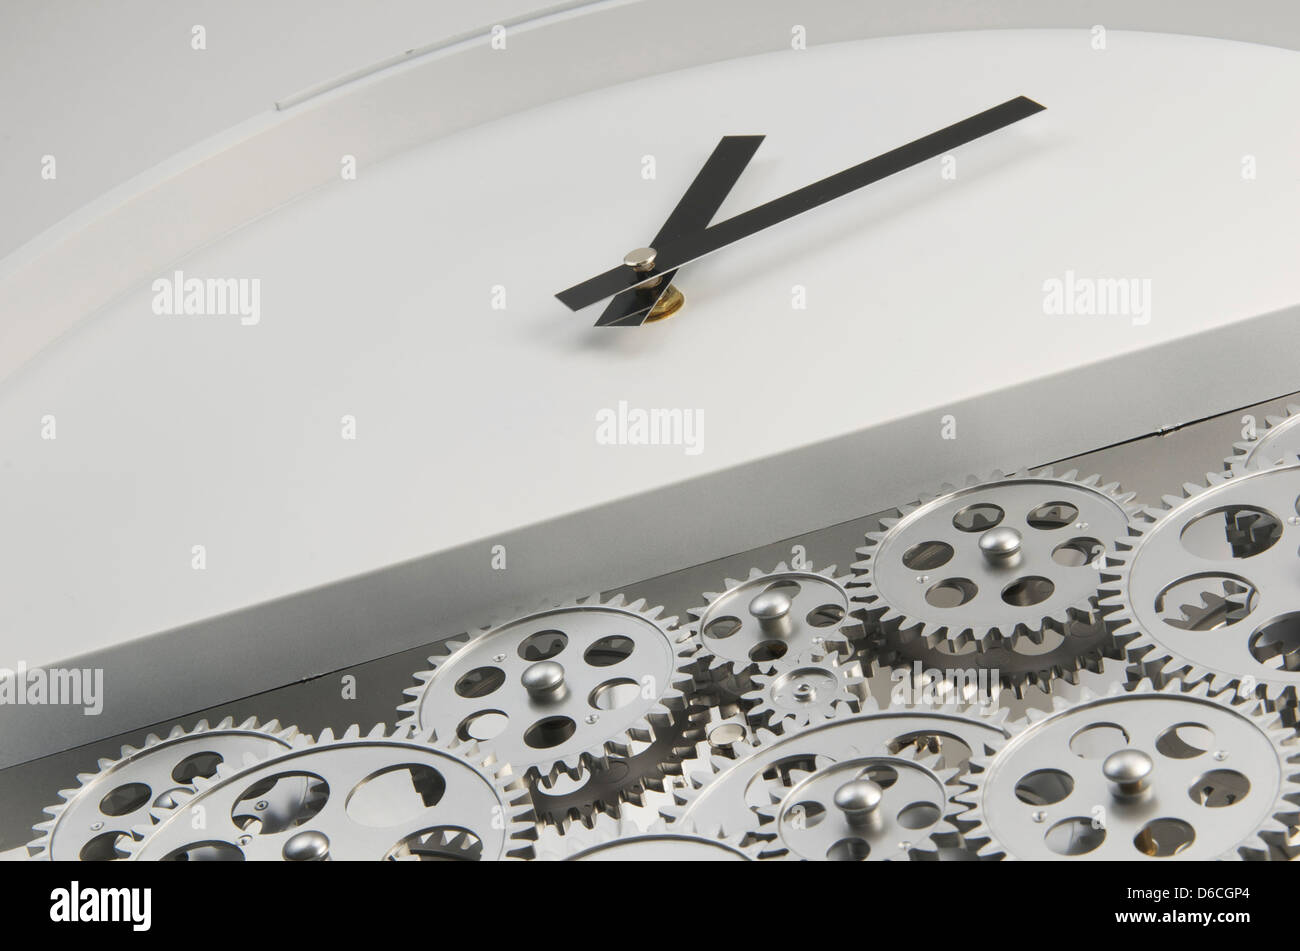 Slanted shot of a white faced clock with black hands and gears showing in it's lower half. - Stock Image